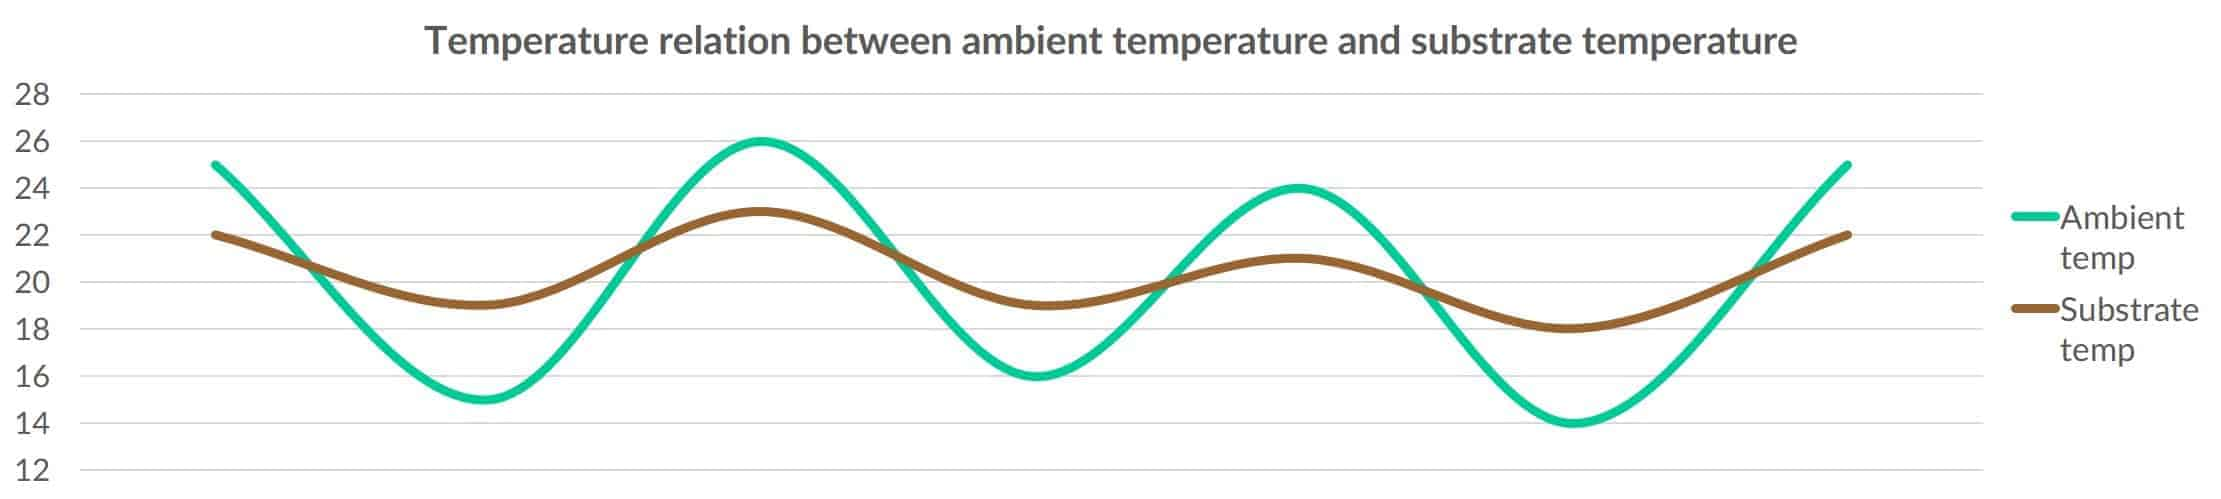 Temperature relation between the ambient temperature and the temperature of the substrate